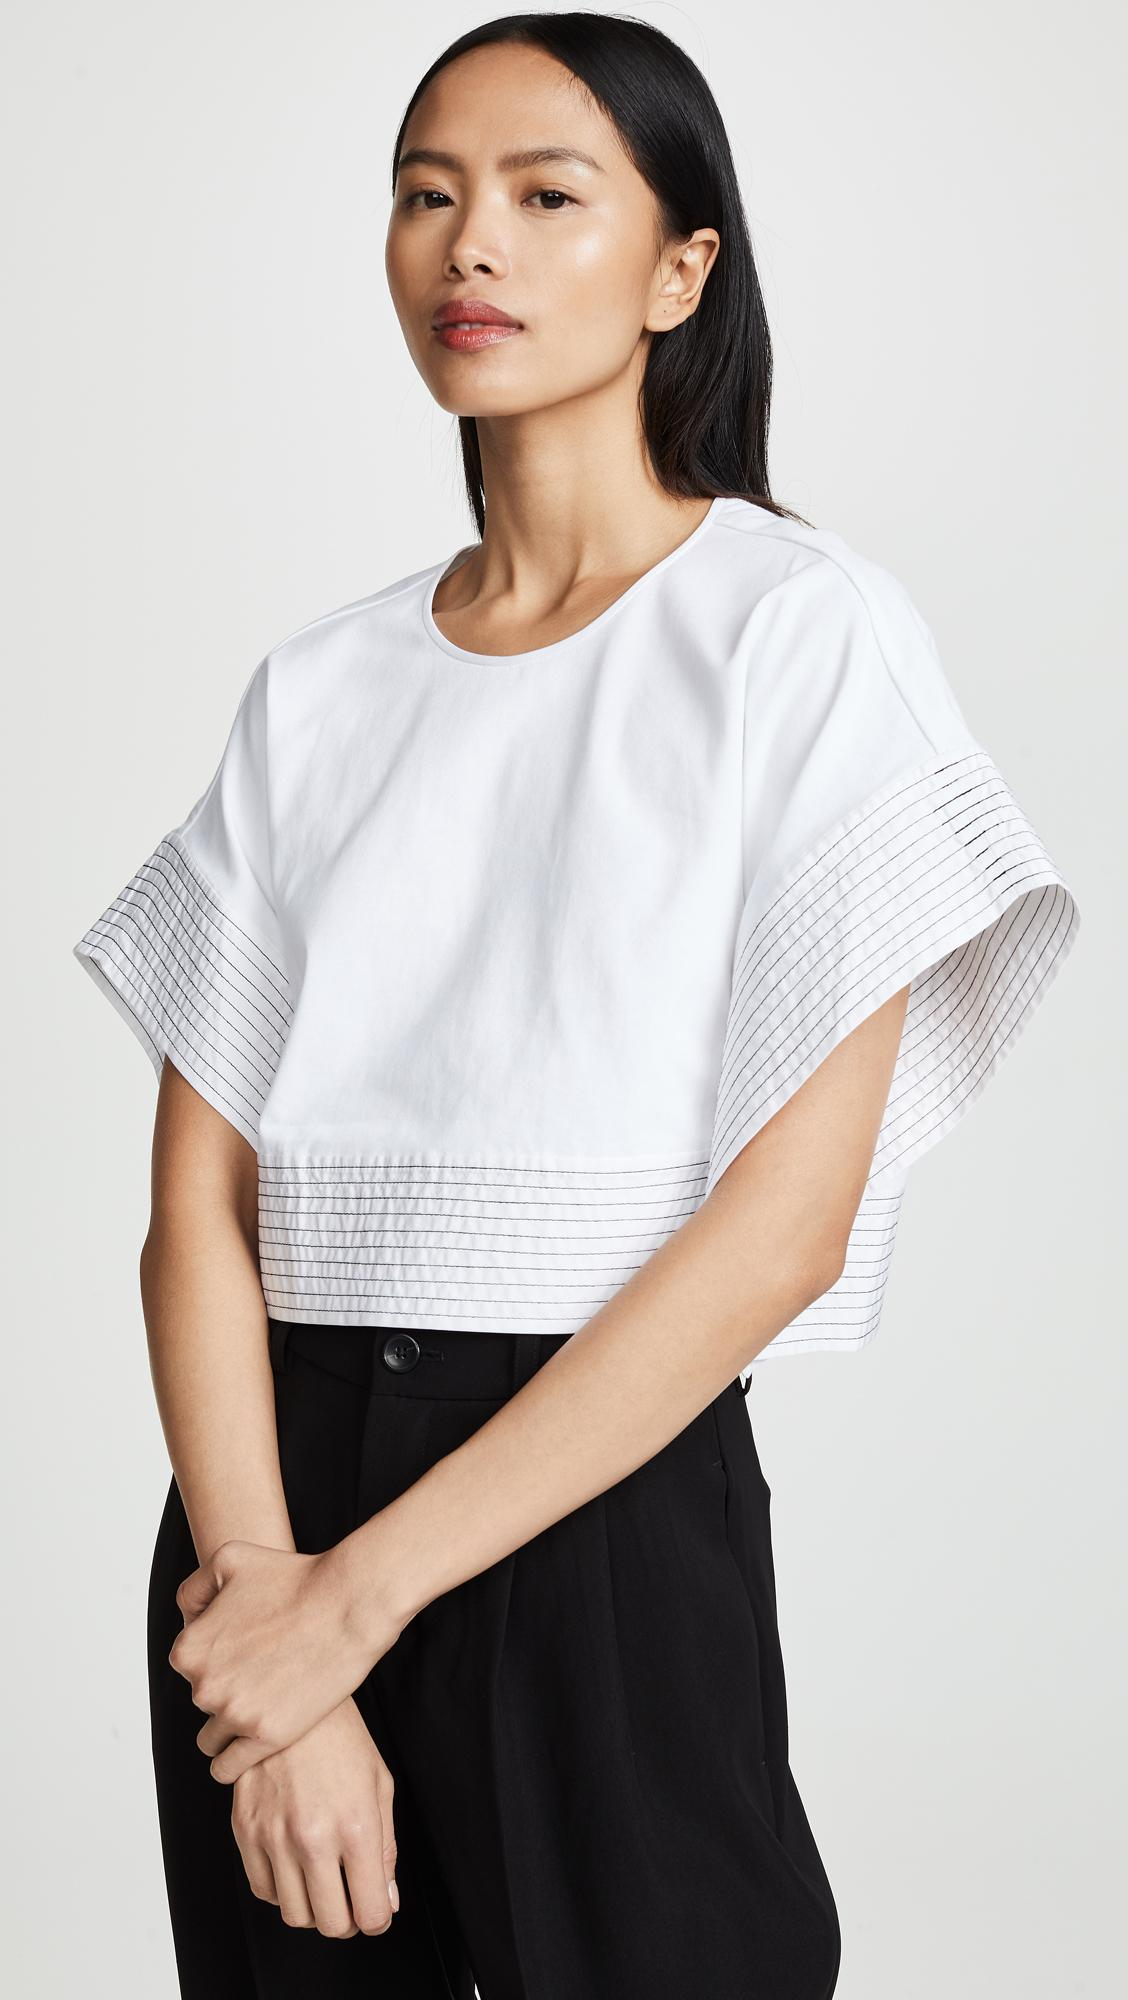 26a7b8df718812 Lyst - 3.1 Phillip Lim Boxy T-shirt With Back Ties in White